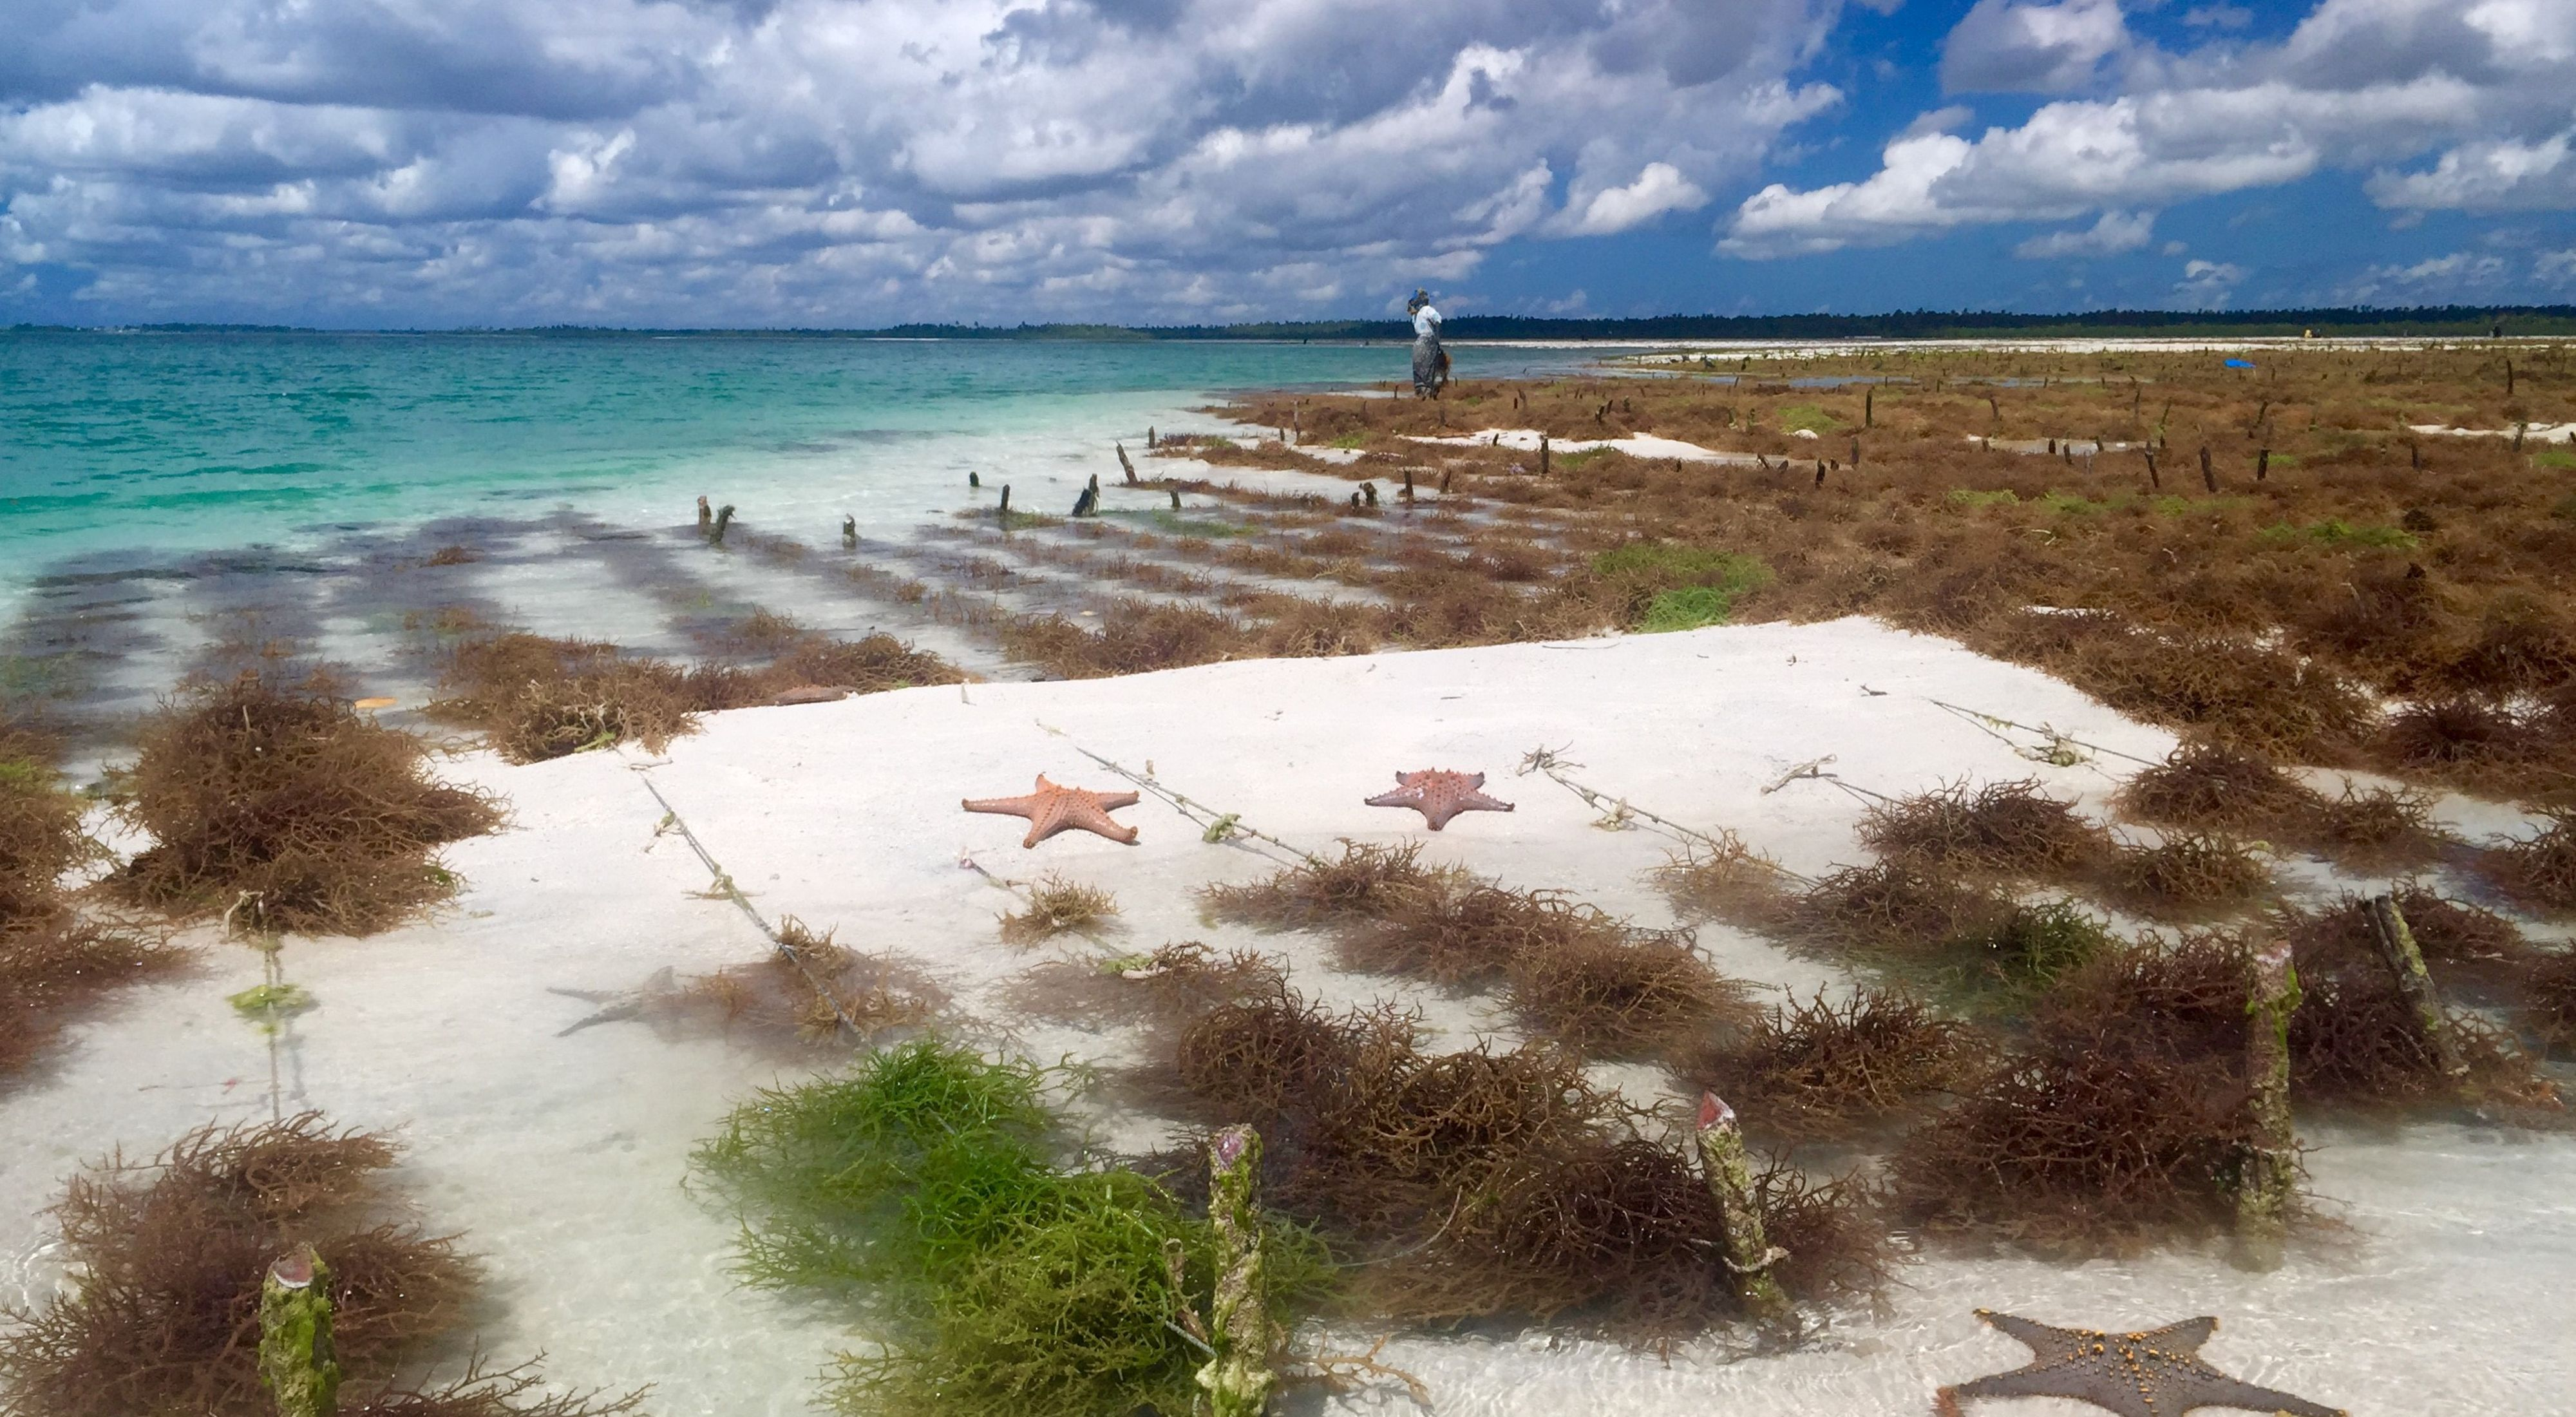 Spinosum farm and neighbouring sea stars exposed during low tide in Mjini Kiuyu – North Pemba